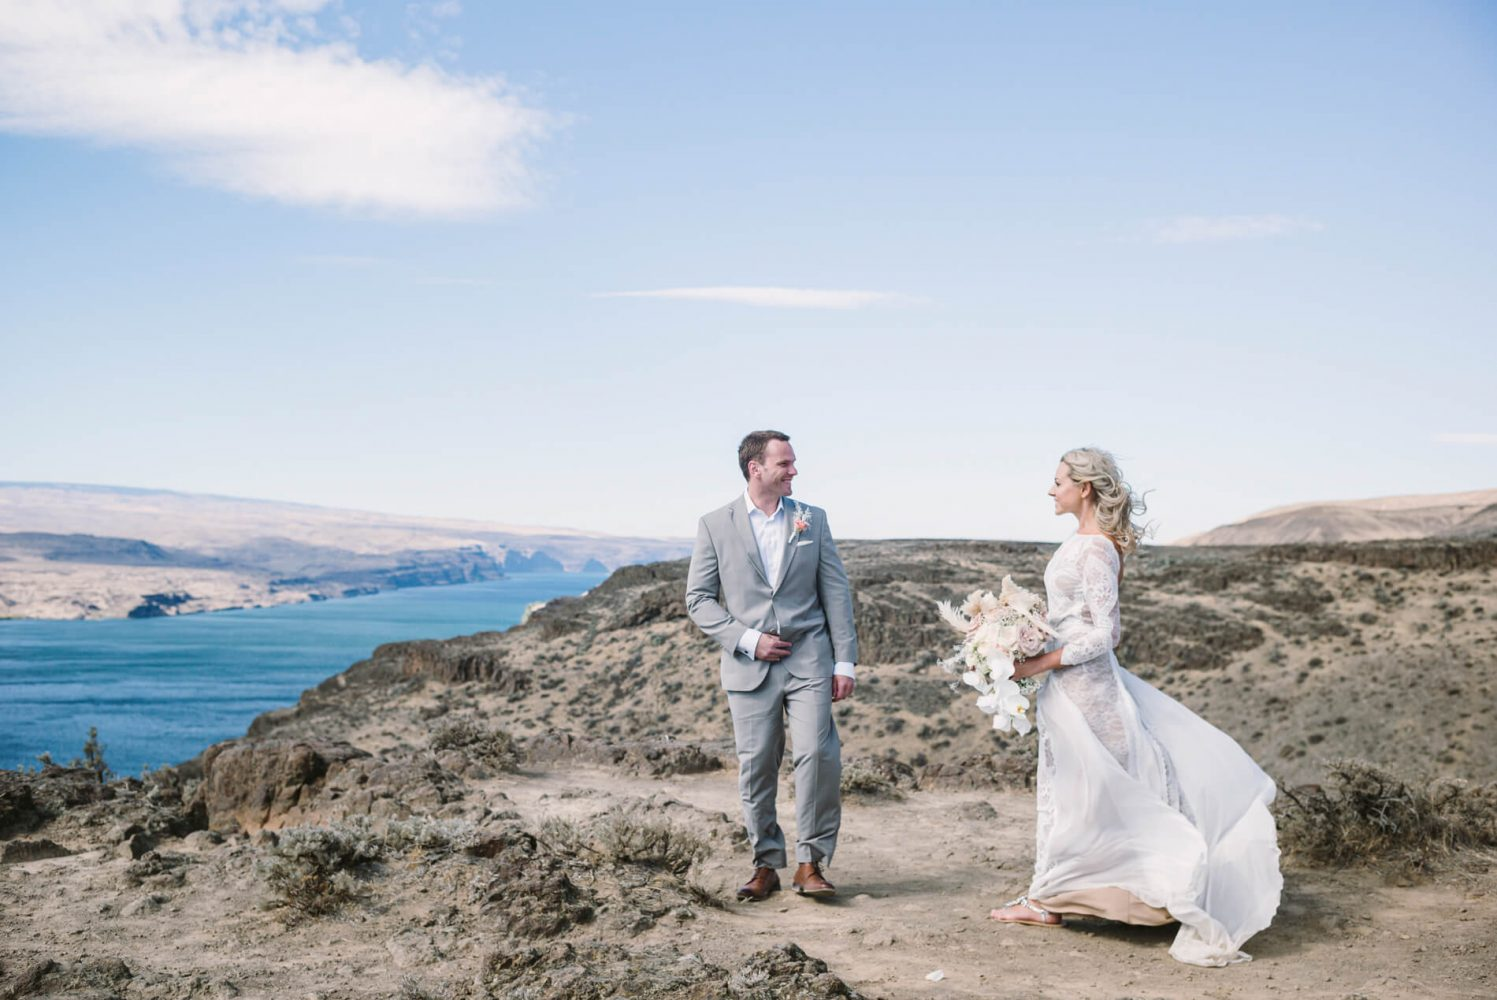 desert-elopement-pacific-northwest-photography0005